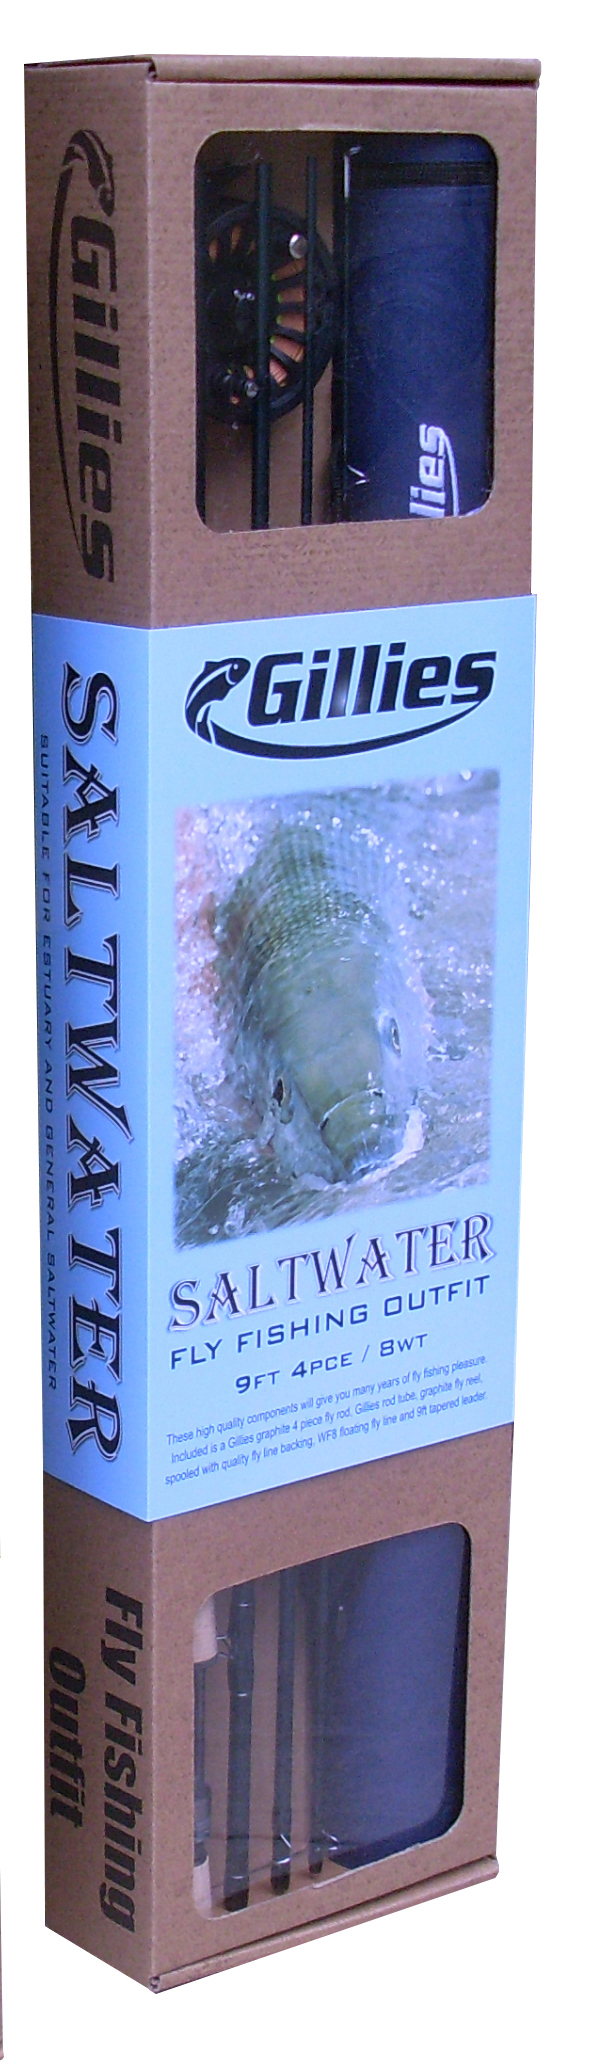 Gillies 8wt Saltwater fly outfit